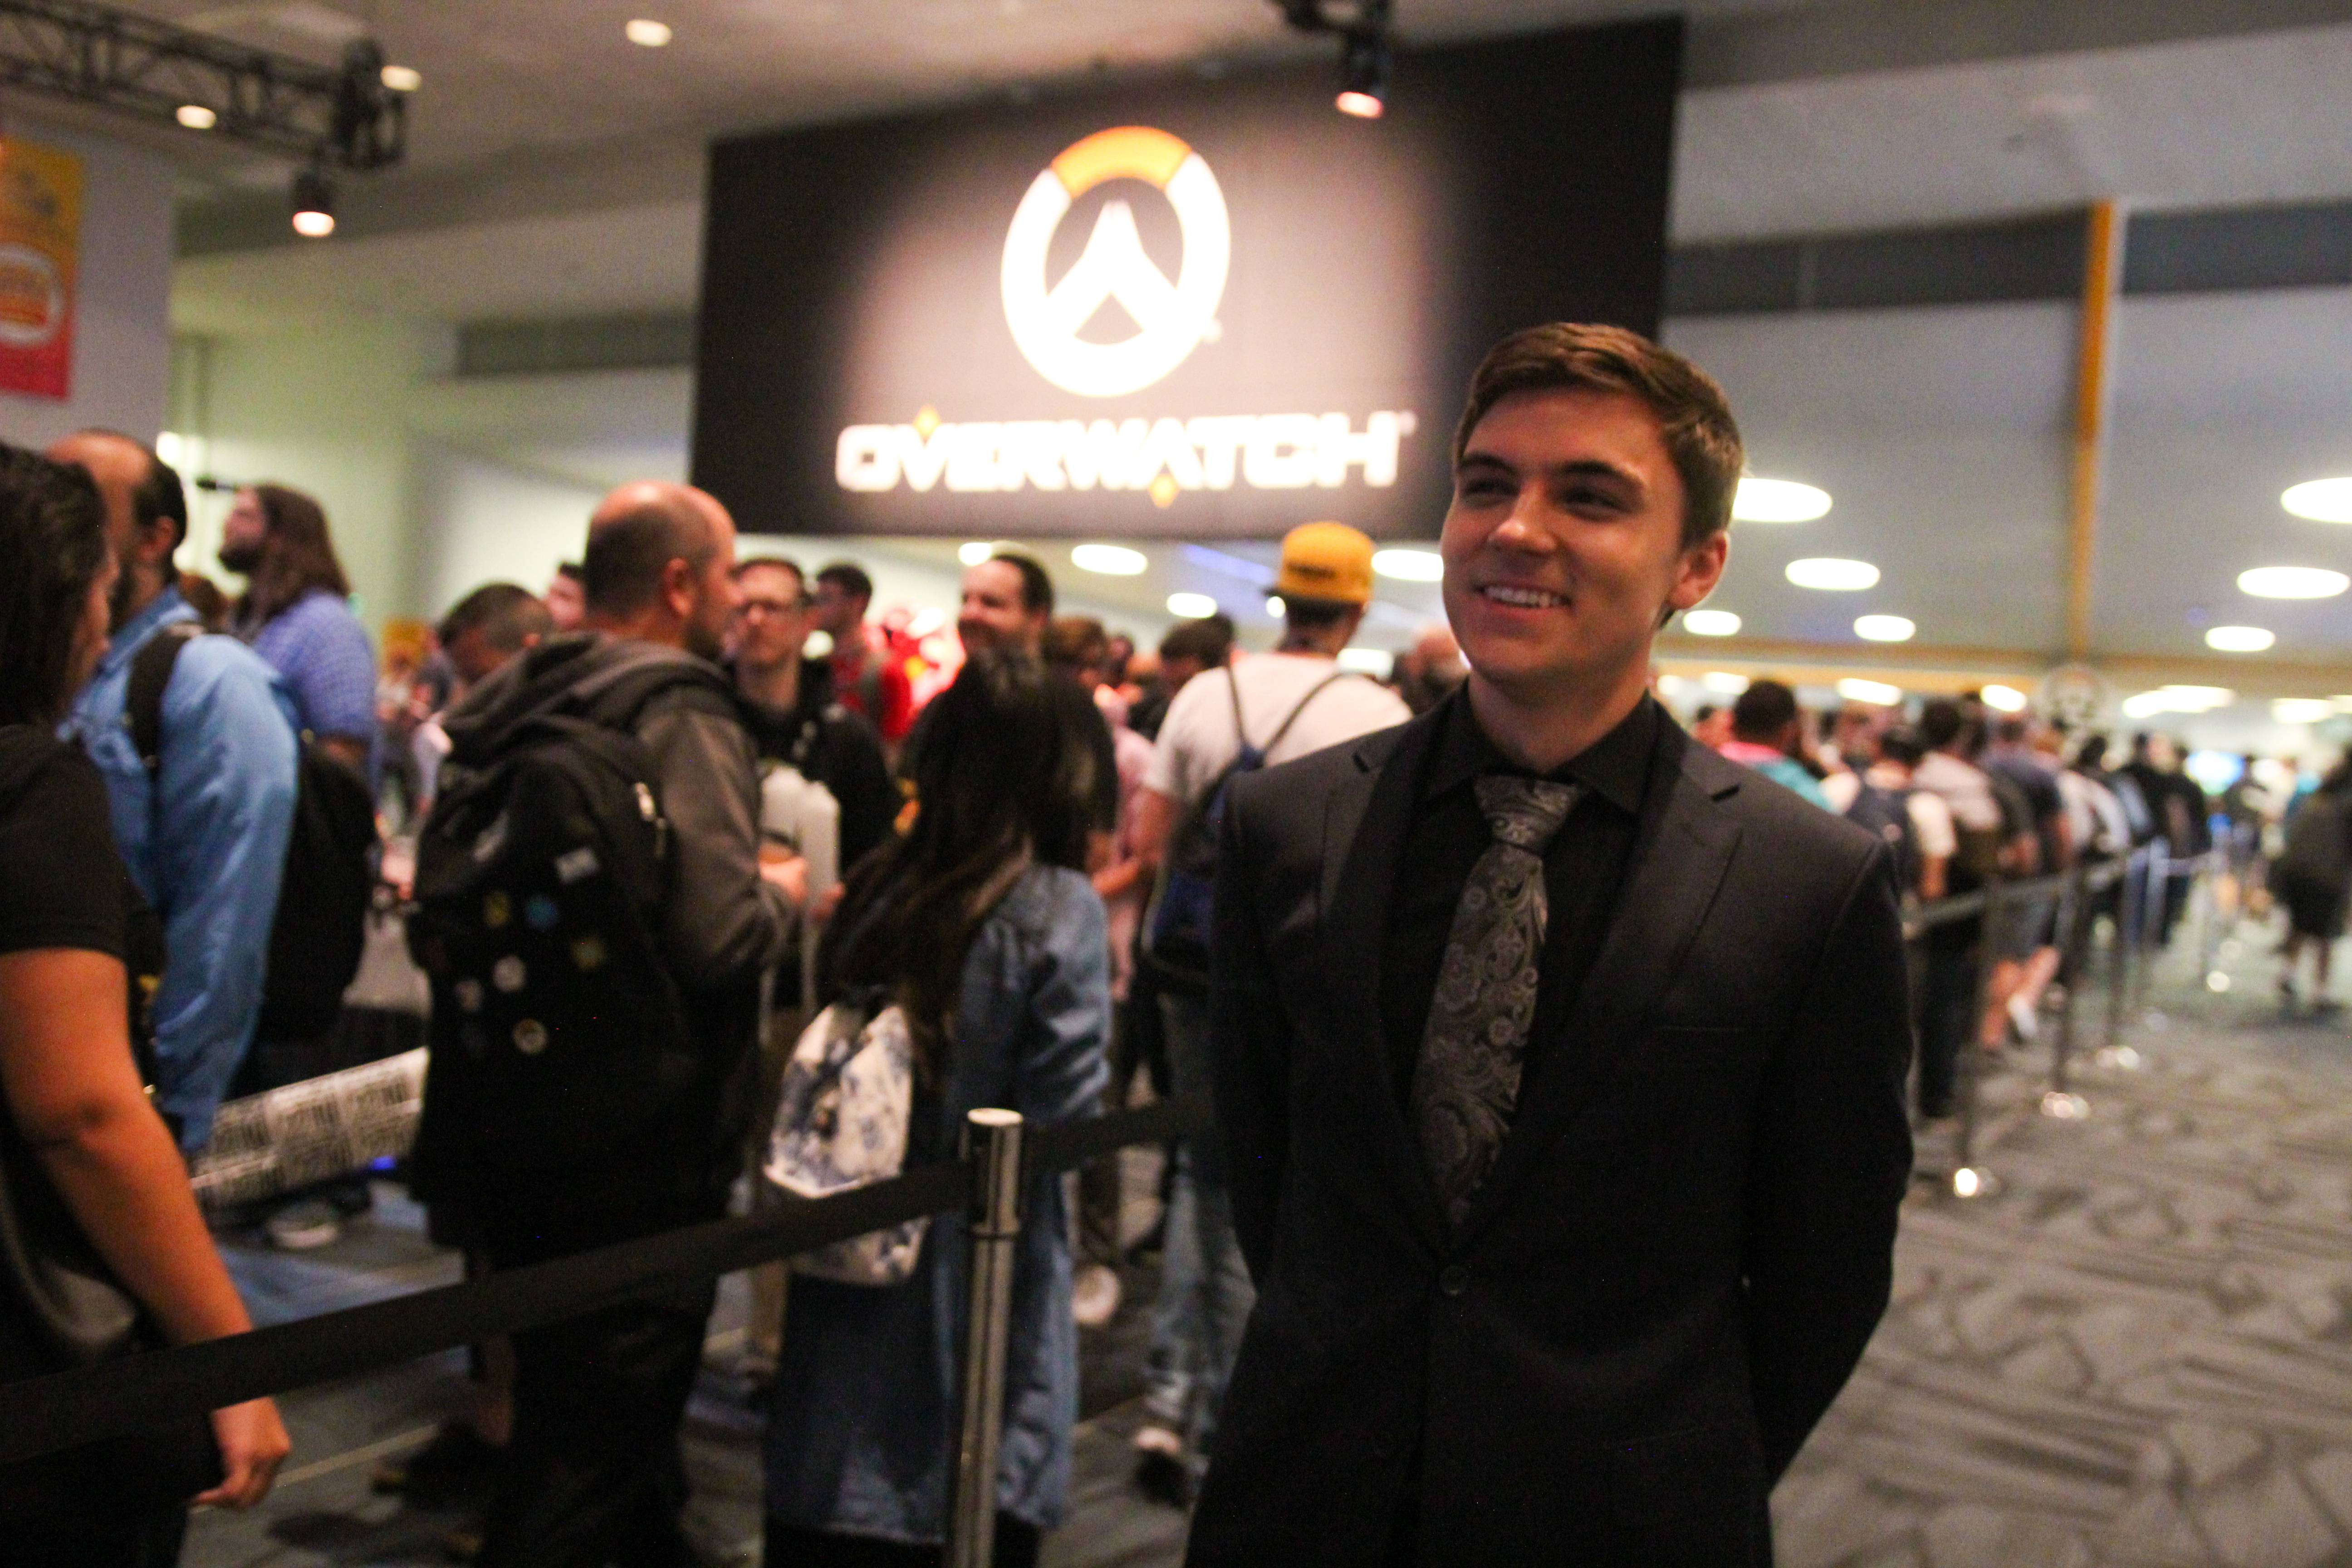 Pro Gamer Jake Lyon, of the Overwatch League's Houston Outlaws, stands outside Overwatch Arena at Blizzcon, where was commentating on matches and interacting with fans.